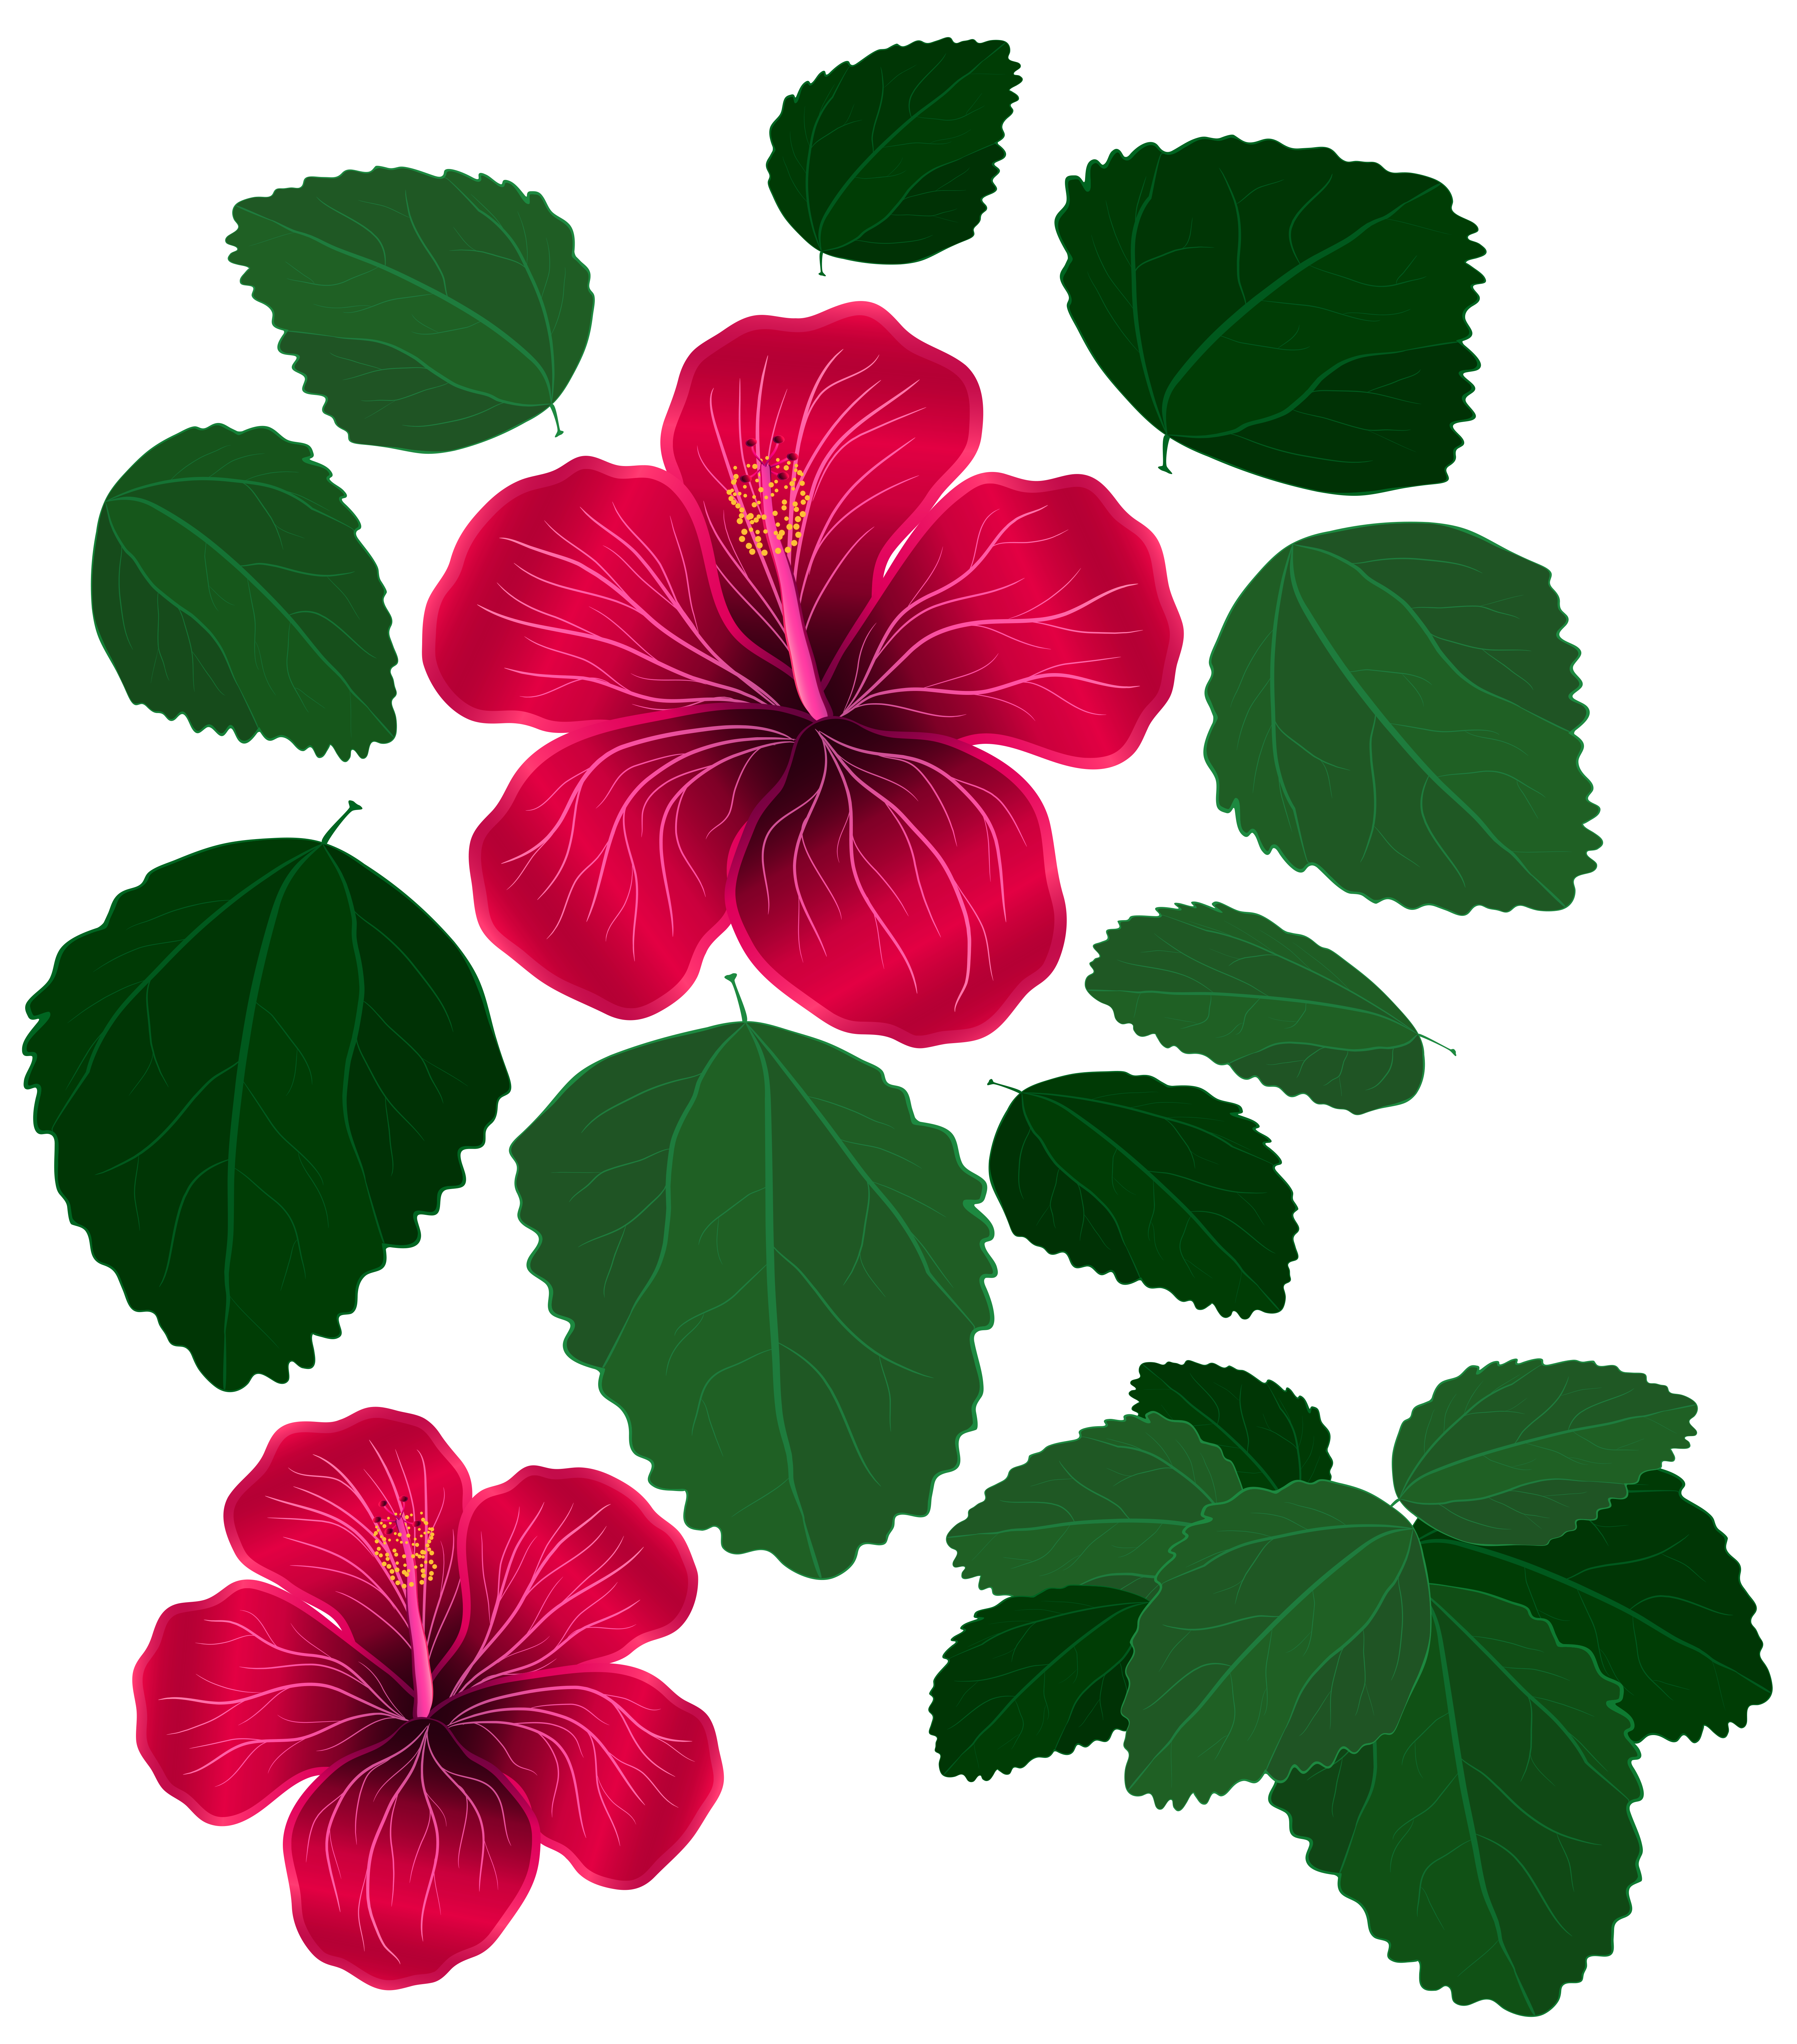 Flower and leaves for. Hawaii clipart leaf